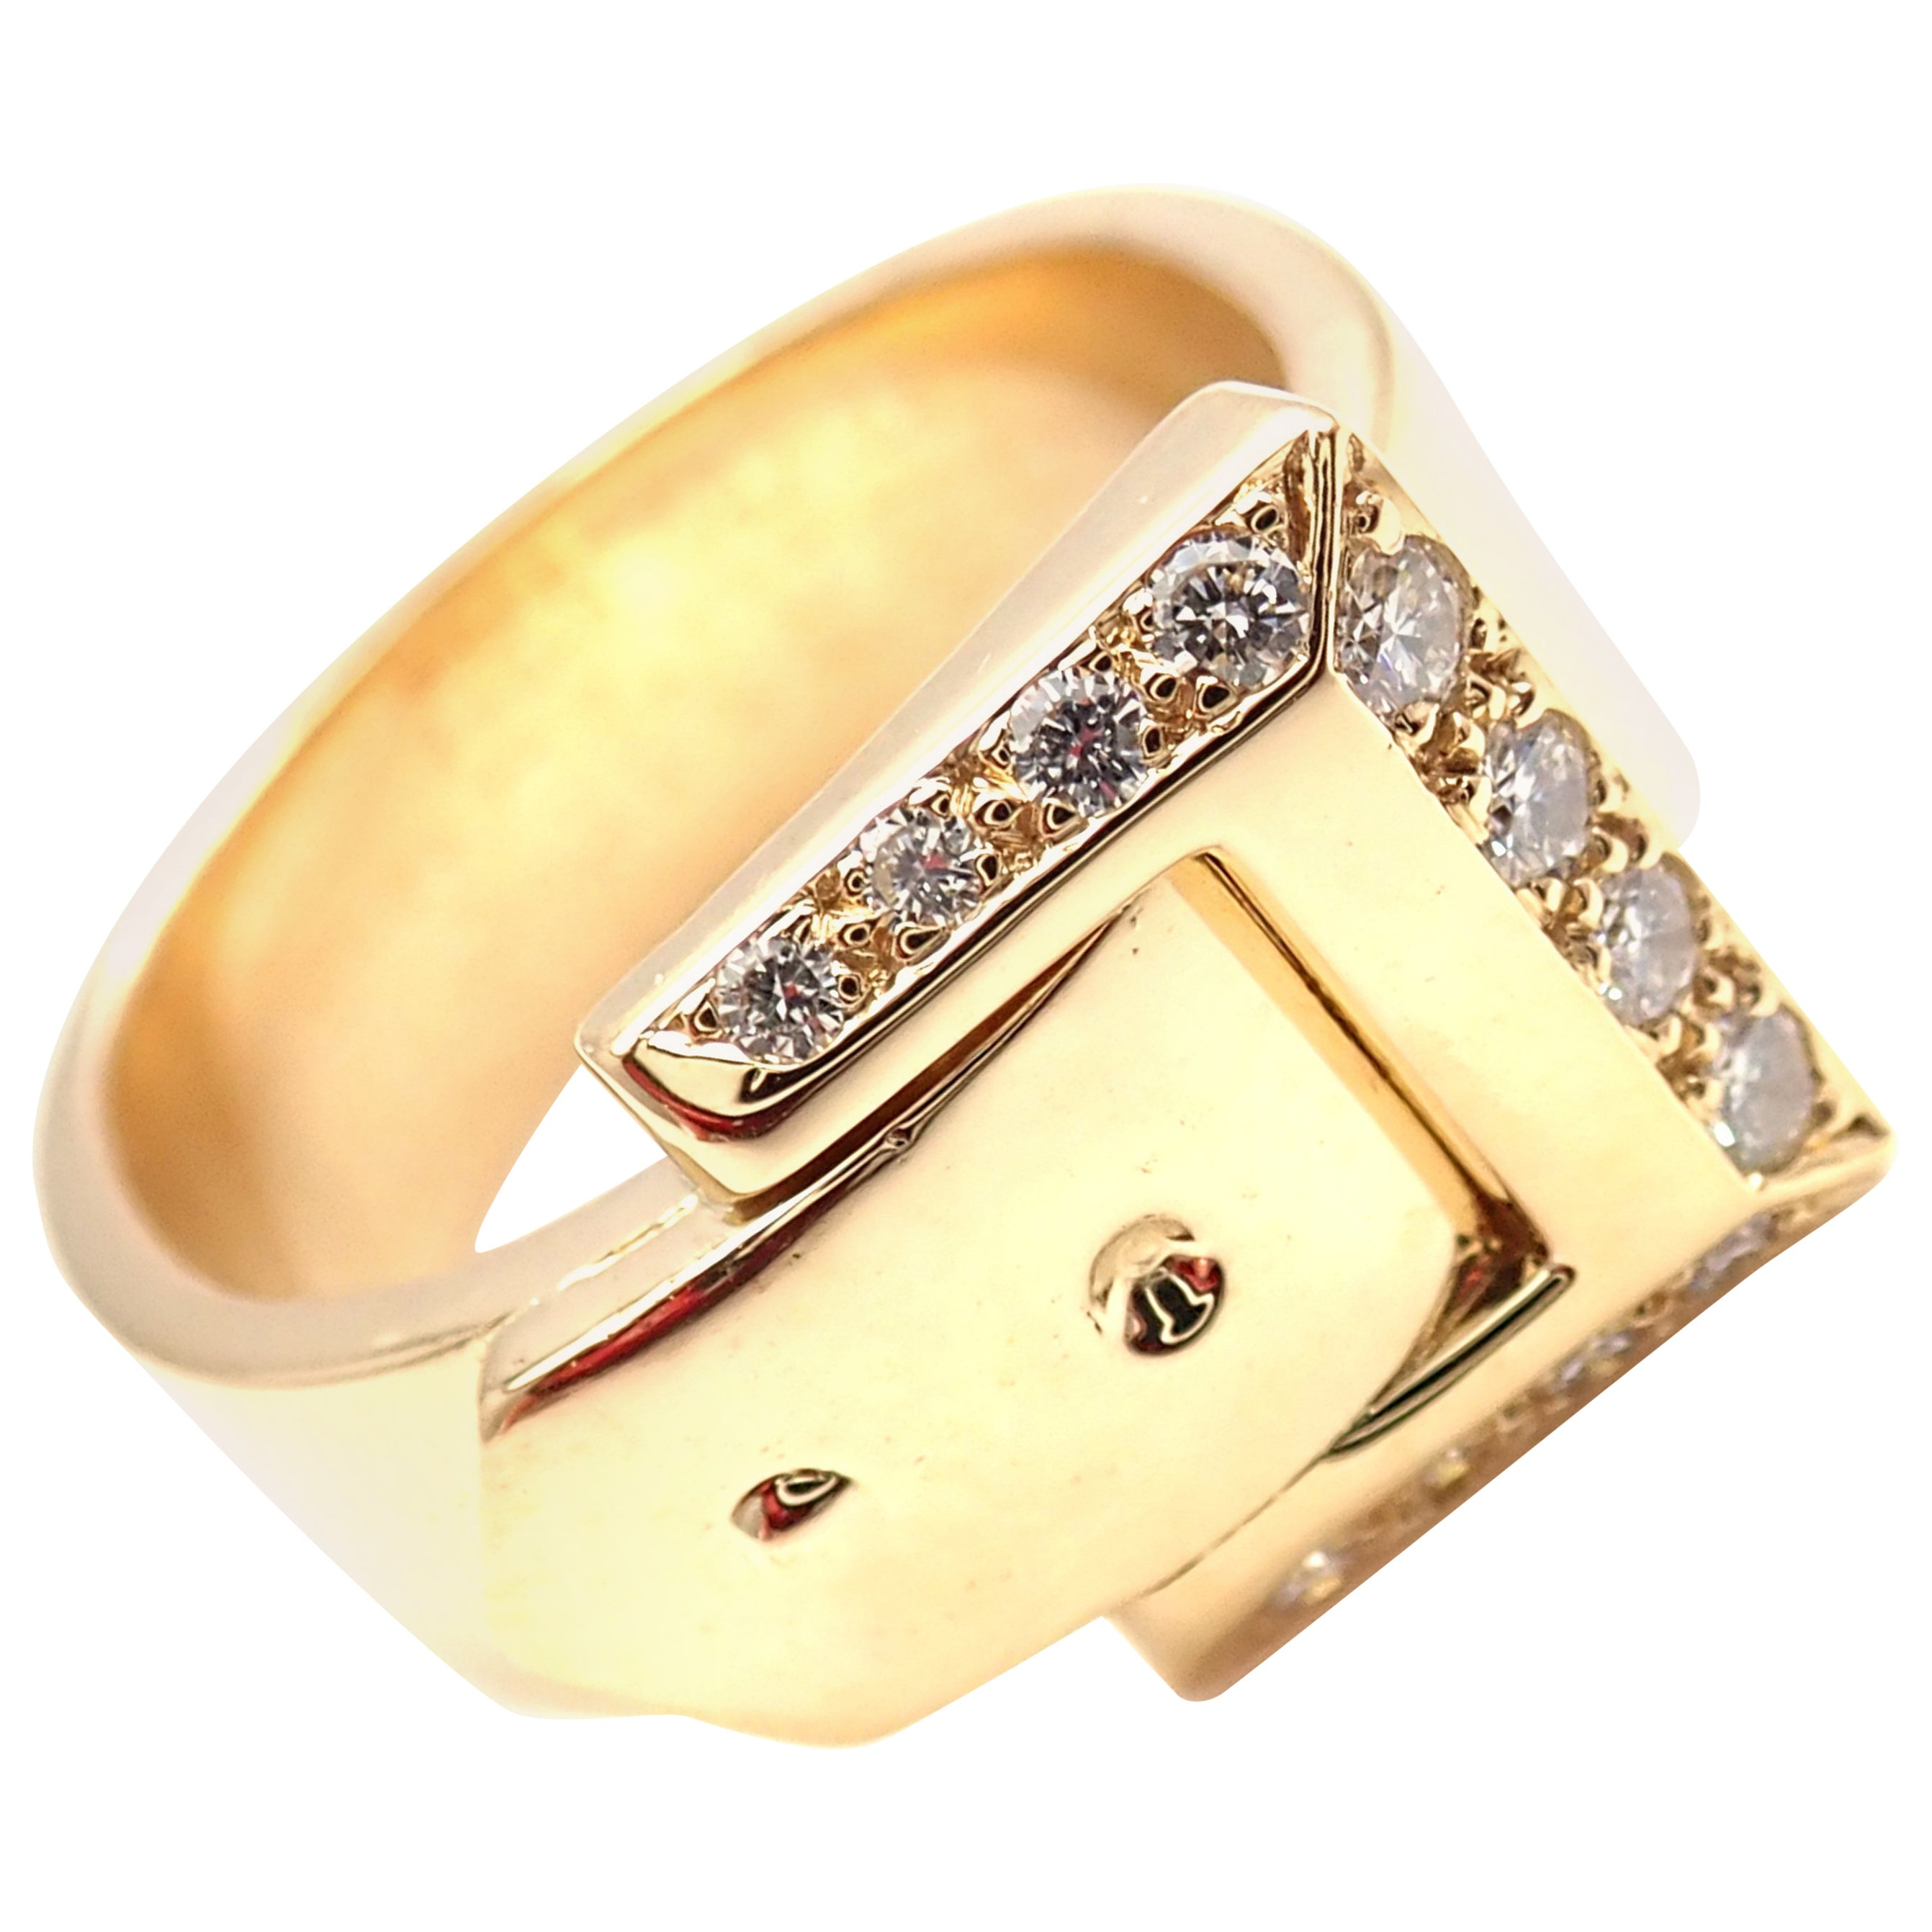 Hermes Diamond Buckle Yellow Gold Band Ring